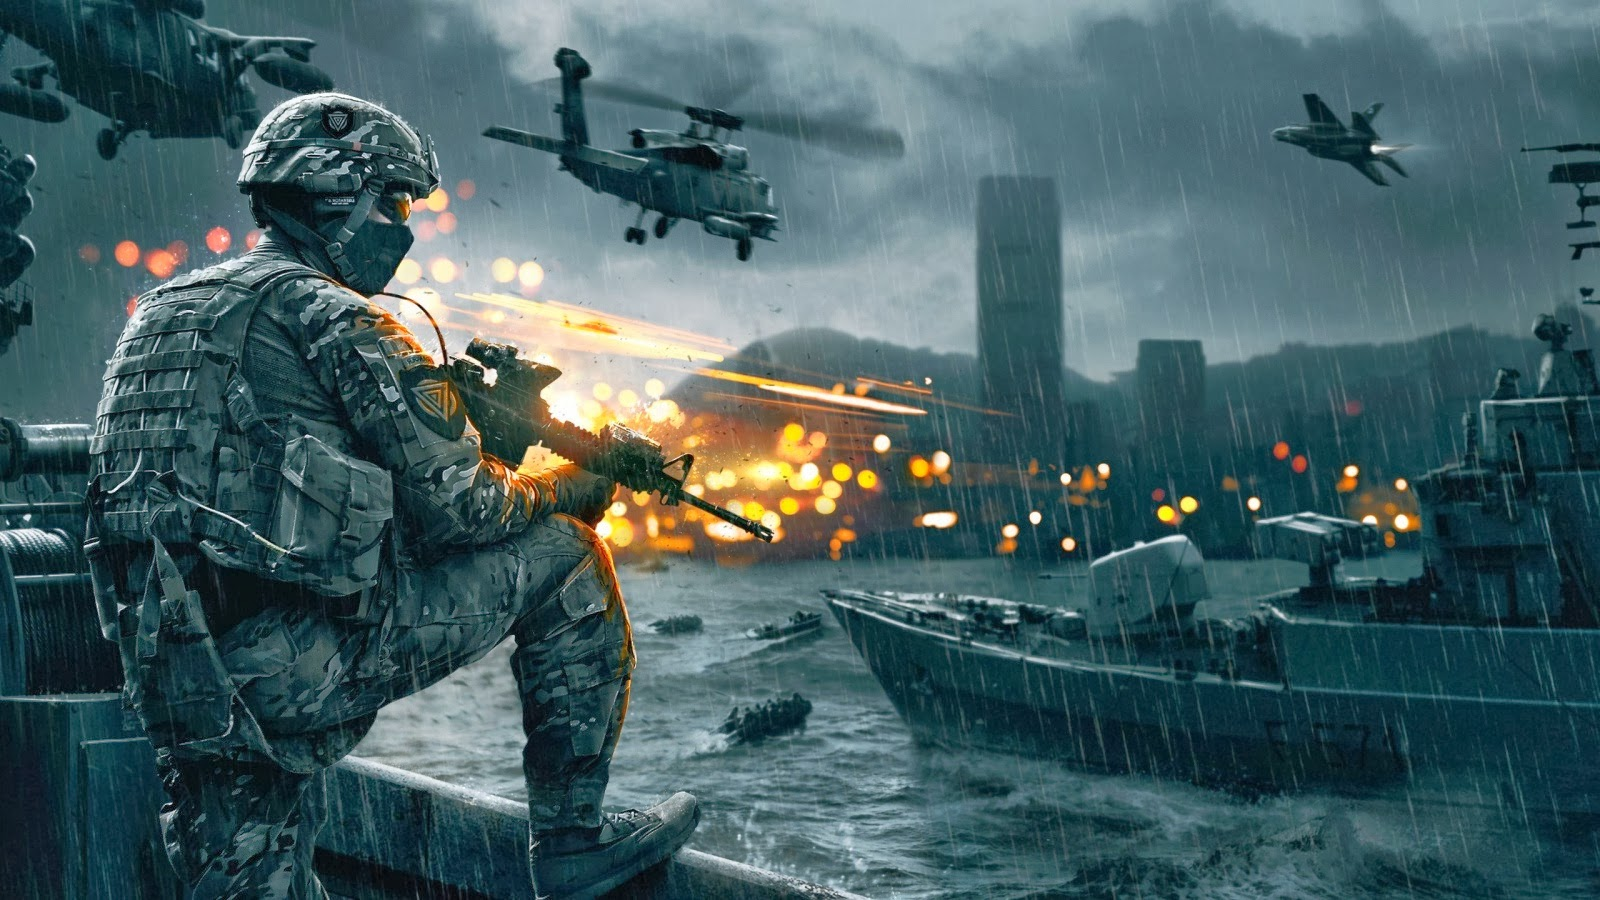 Hollywood movies hd wallpapers unique hd wallpapers - Battlefield screensaver ...